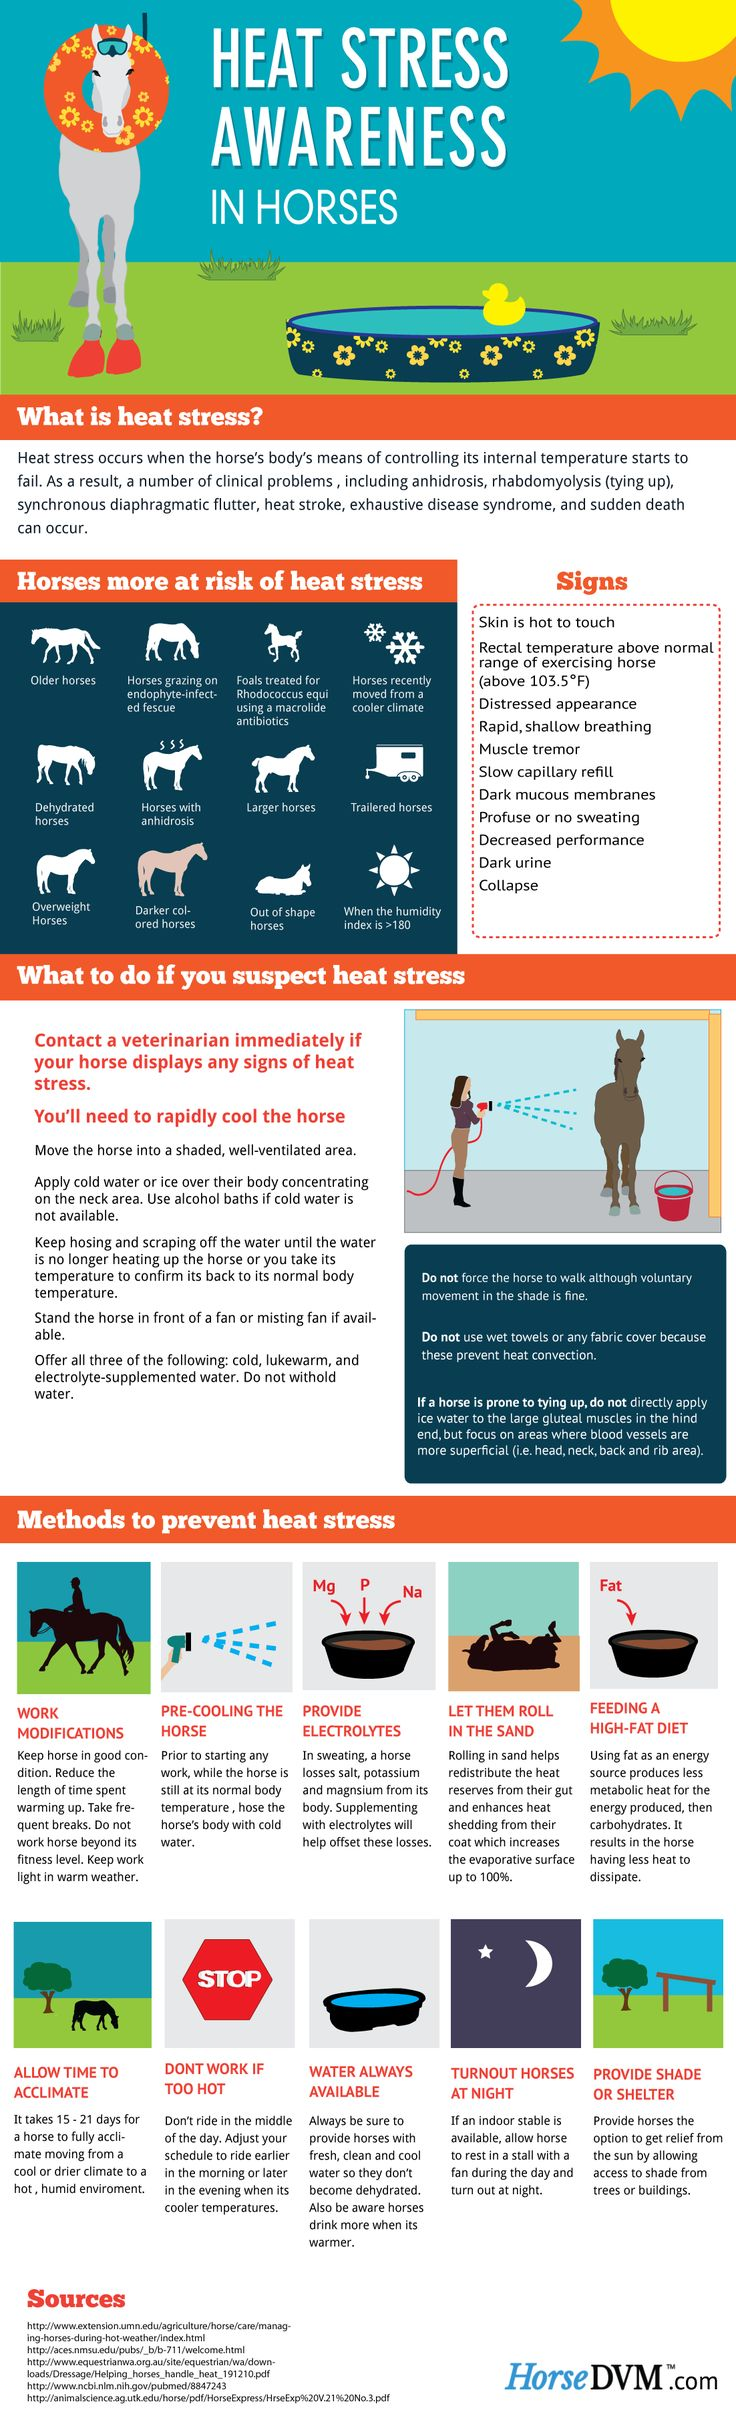 Heat Stress Awareness in Horses by HorseDVM- Visit us at www.agvantagefarm.com for all your horse feed and supply needs!